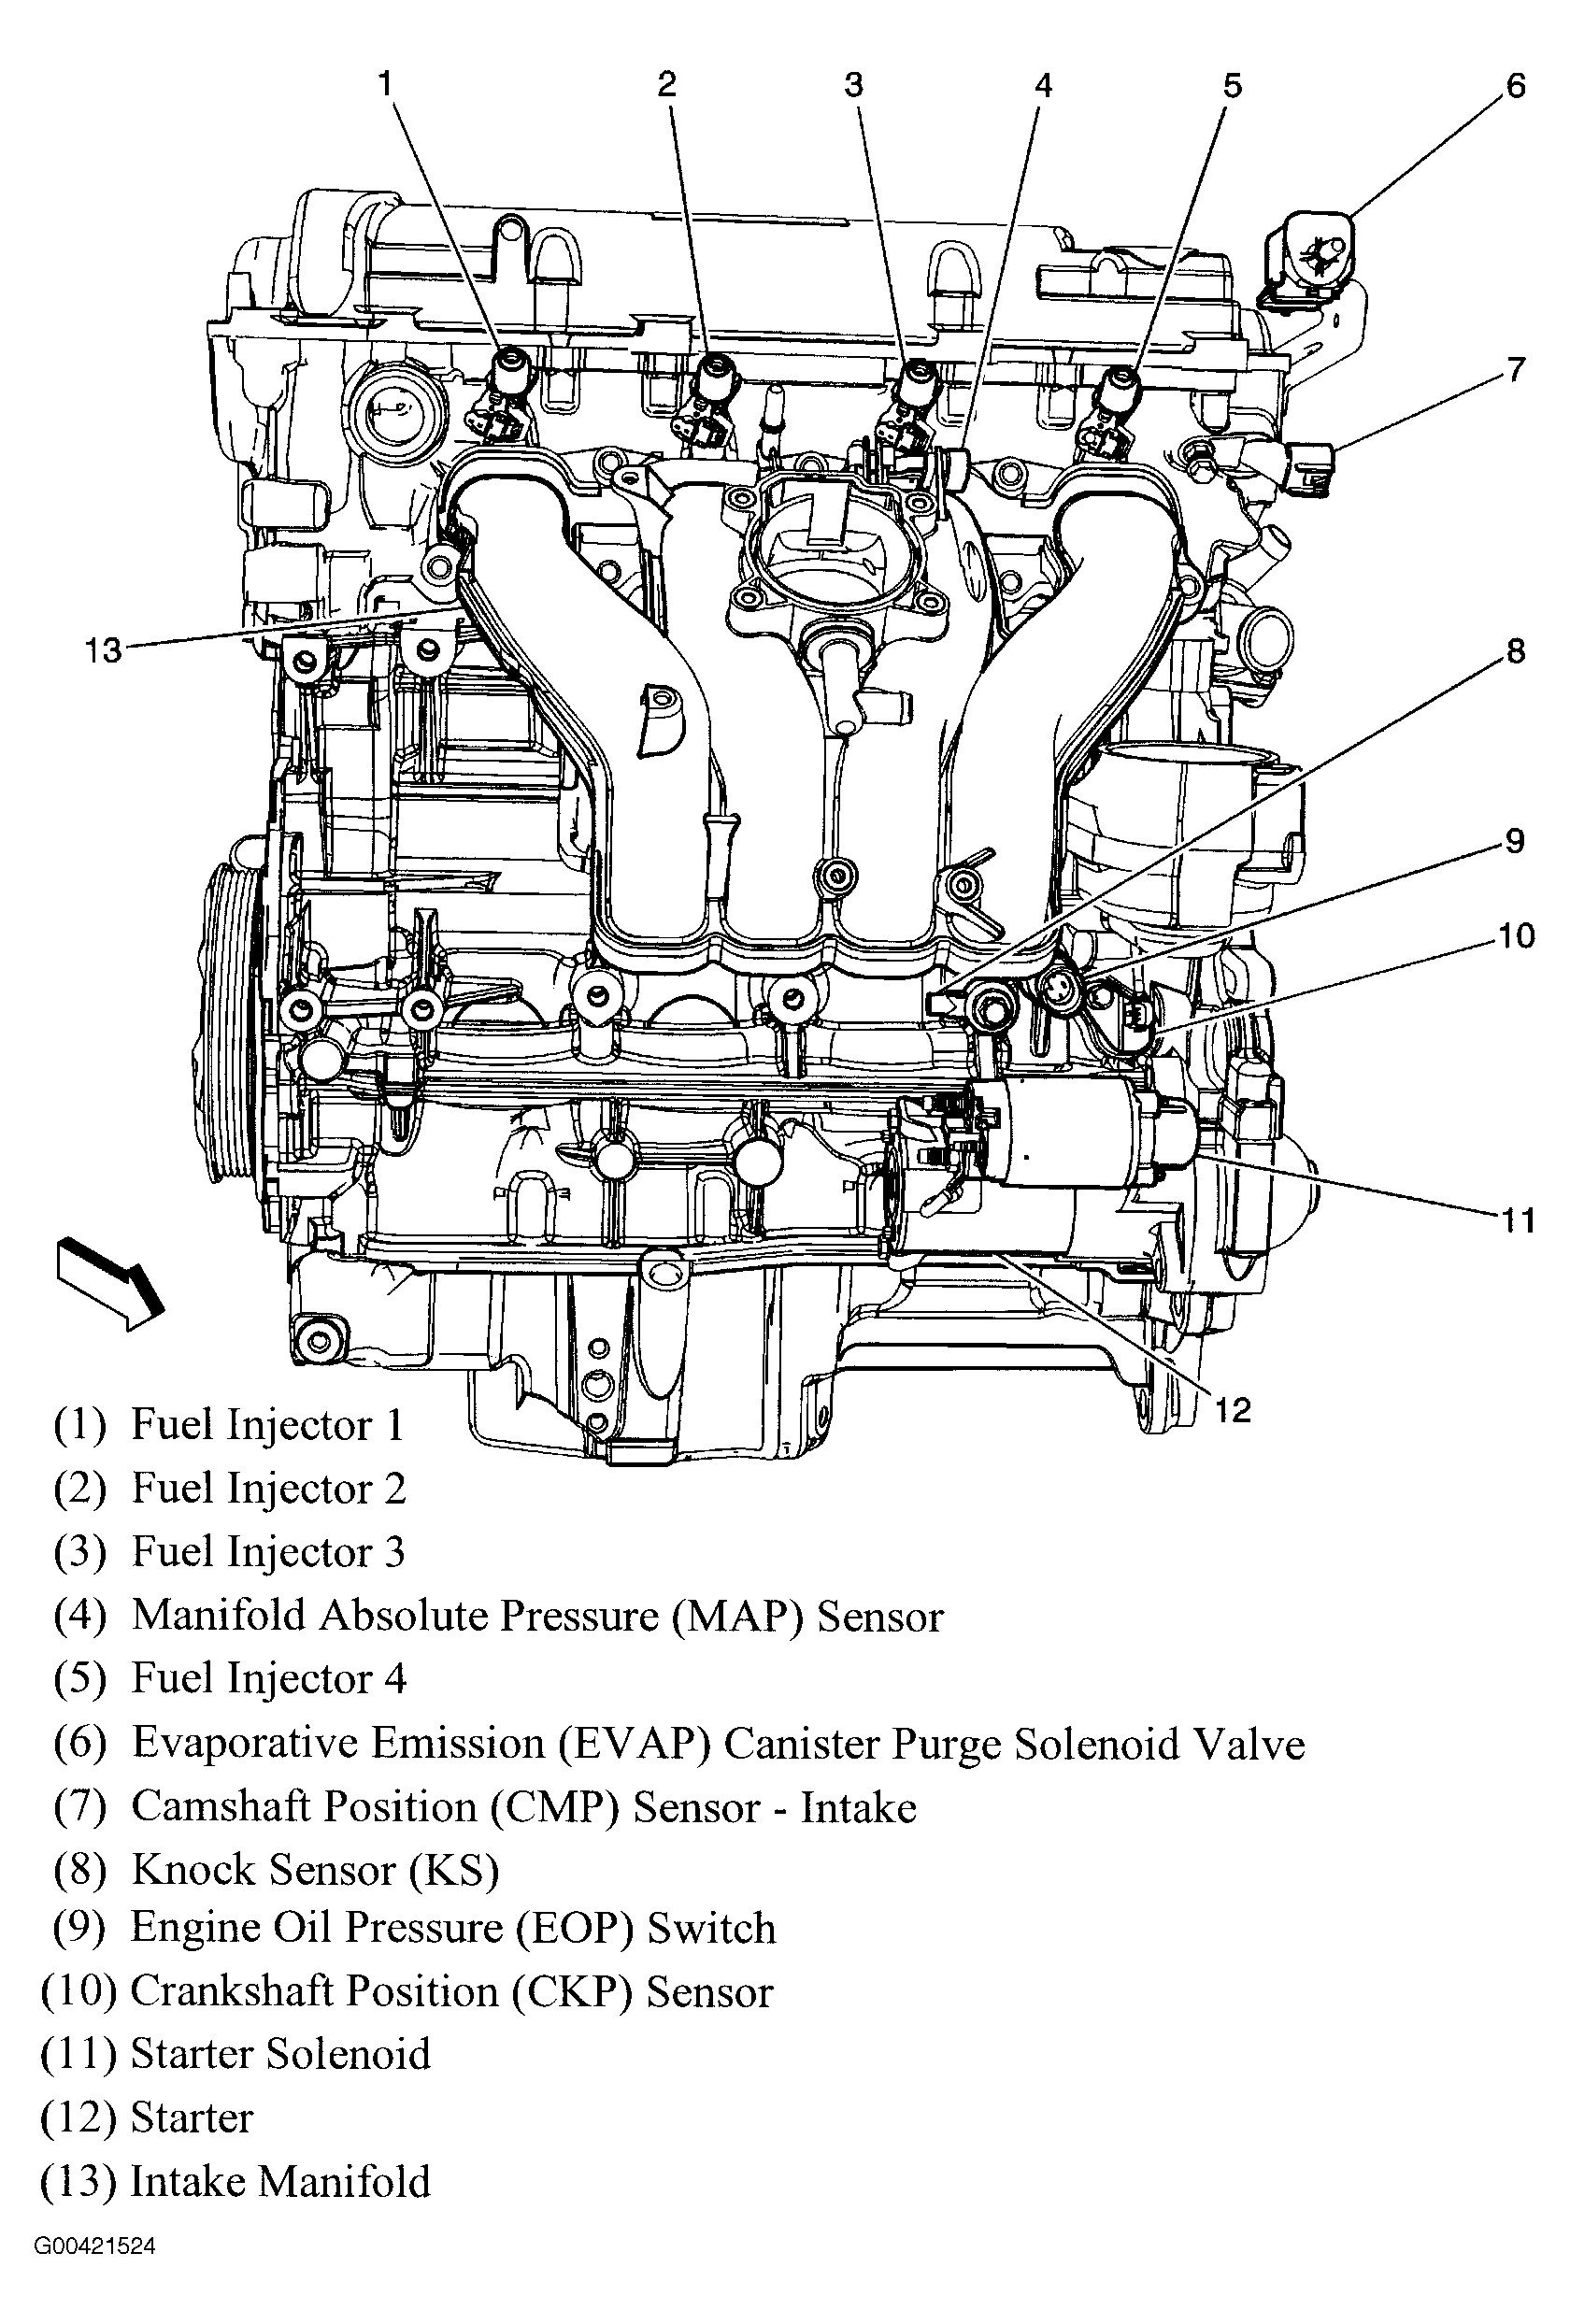 8100 harness furthermore Input Speed Sensor Location 52282 in addition Hyundai Sonata 2010 Engine Diagram together with 2011 Chevrolet Colorado Dash Removal Diagram together with Chevrolet S 10 2 8 1989 Specs And Images. on chevrolet 2011 hhr engine diagram